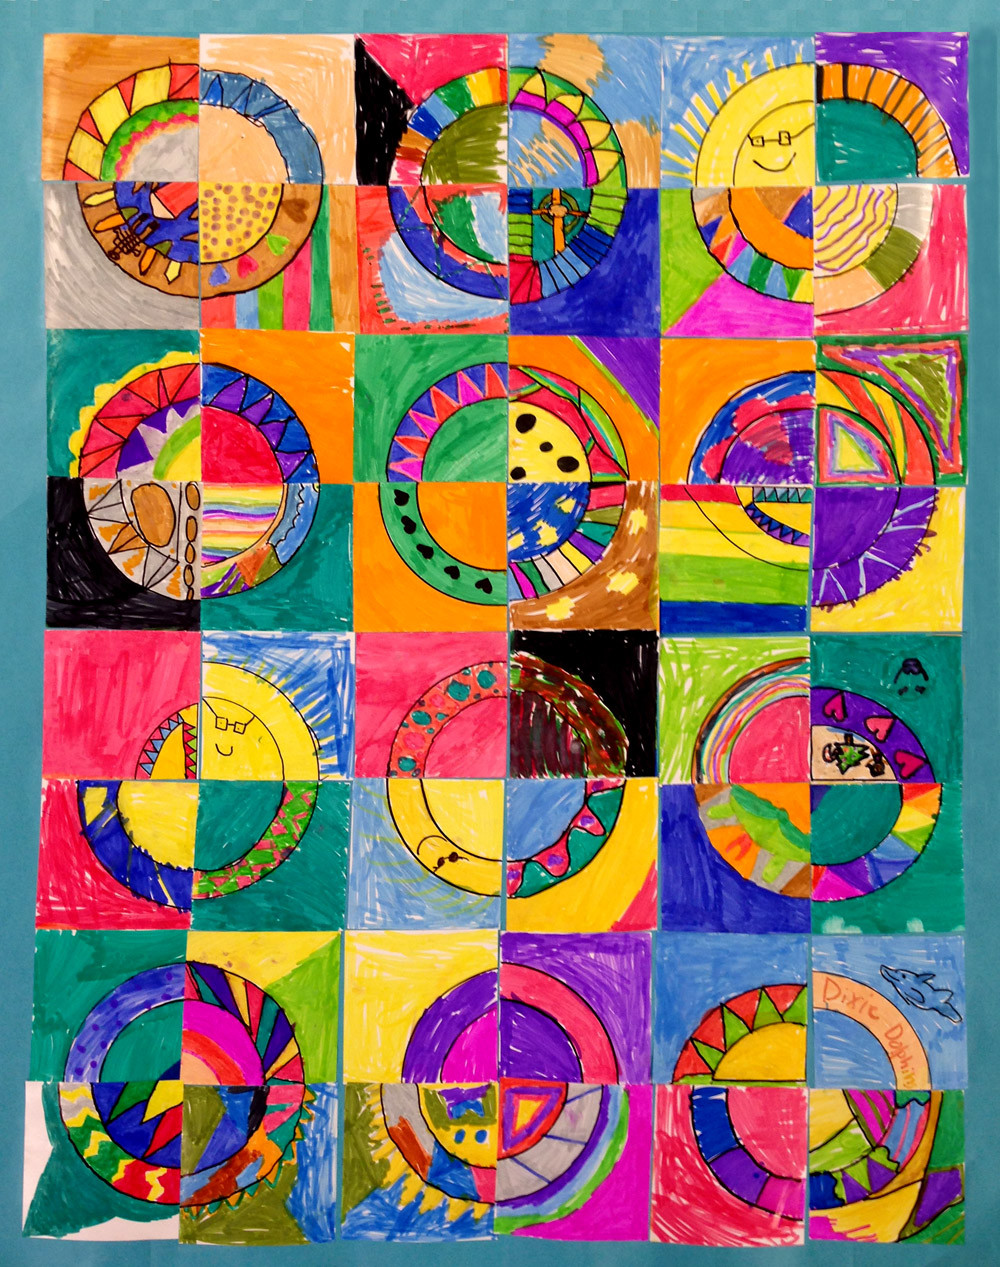 Best ideas about Art Projects Kids . Save or Pin Paper Quilts Art Projects for Kids Now.